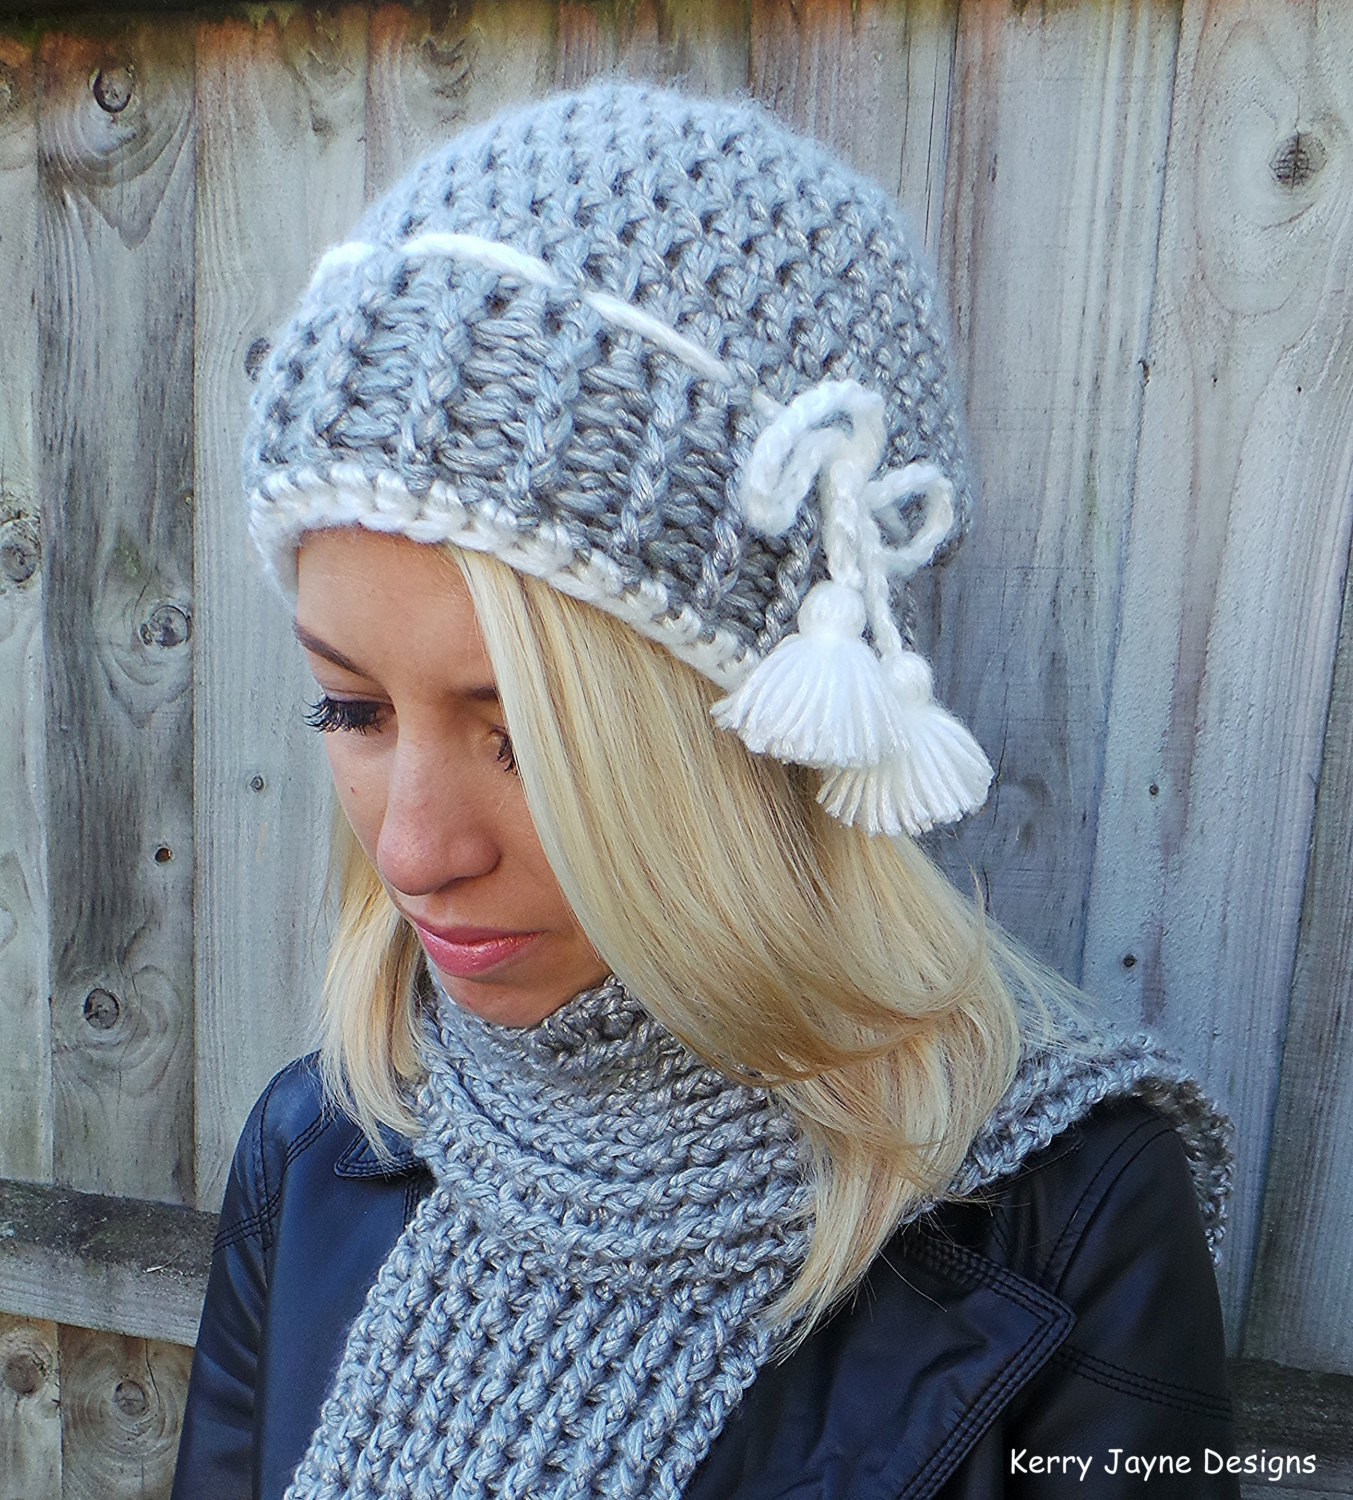 Beautiful nordic Tassel Crochet Pattern Crochet Hat Pattern Crochet Hat and Scarf Of Superb 50 Pics Crochet Hat and Scarf